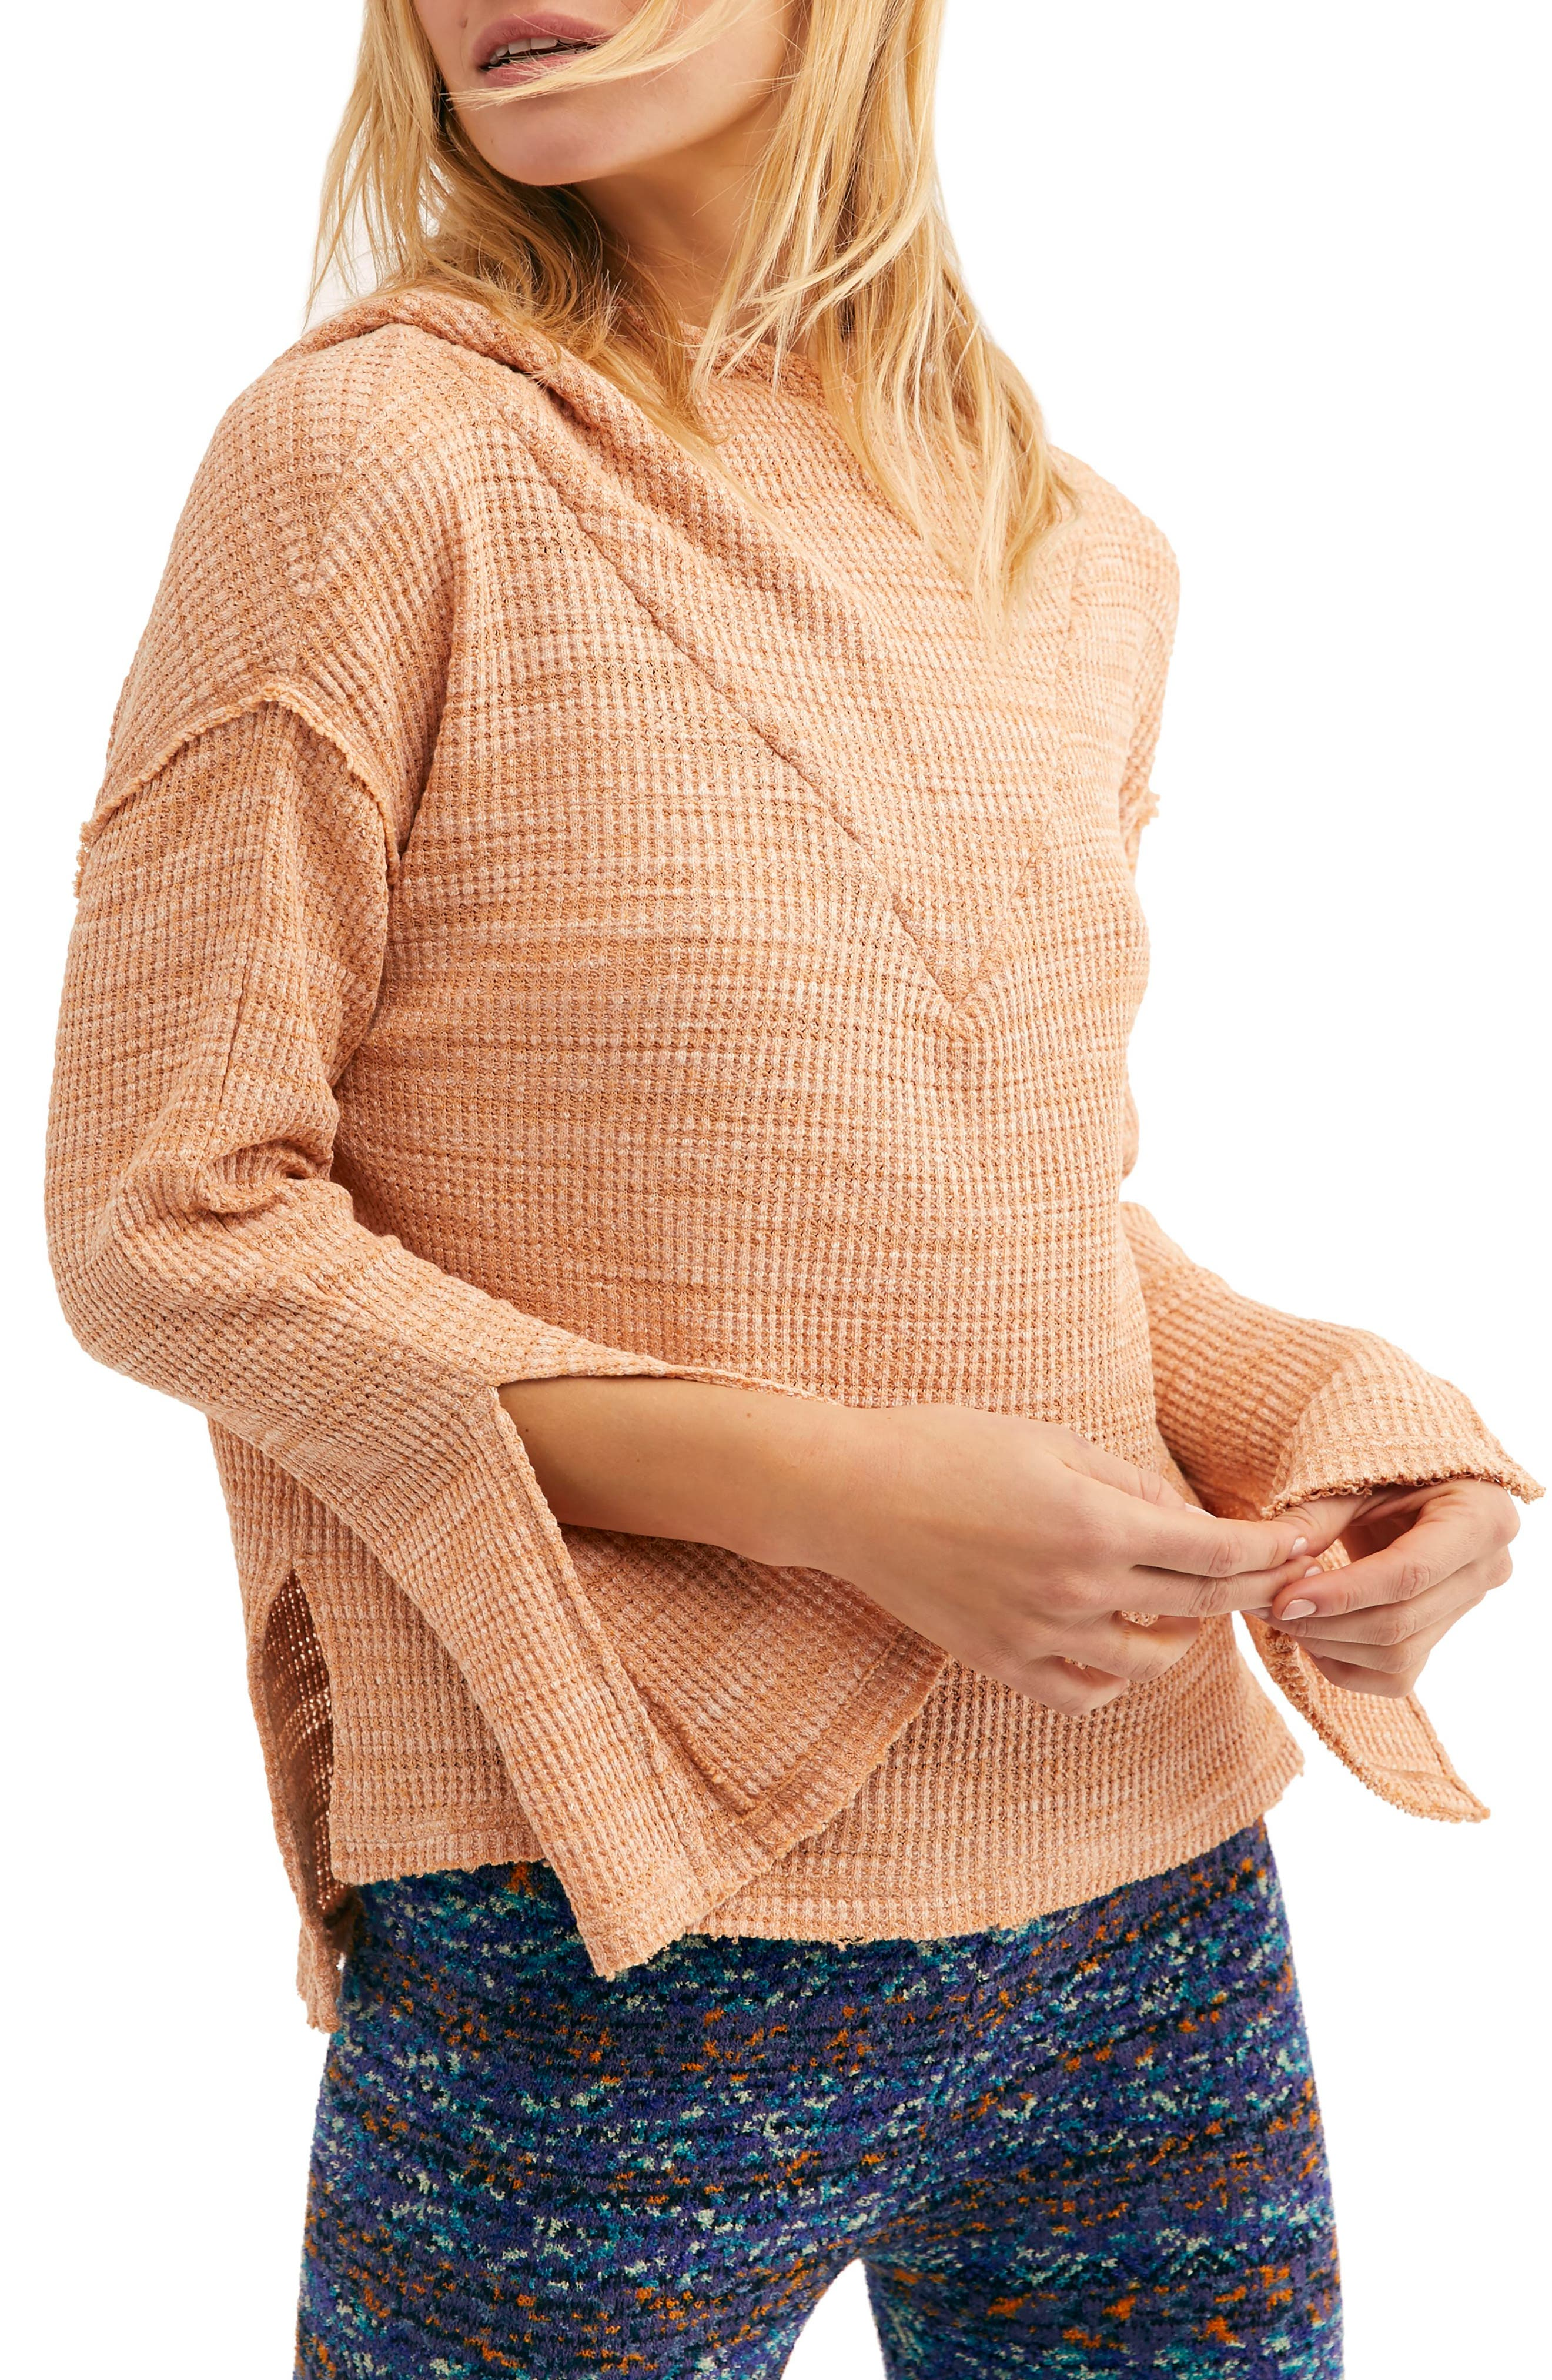 FREE PEOPLE Endless Summer by Free People Hooded Knit Top, Main, color, ORANGE